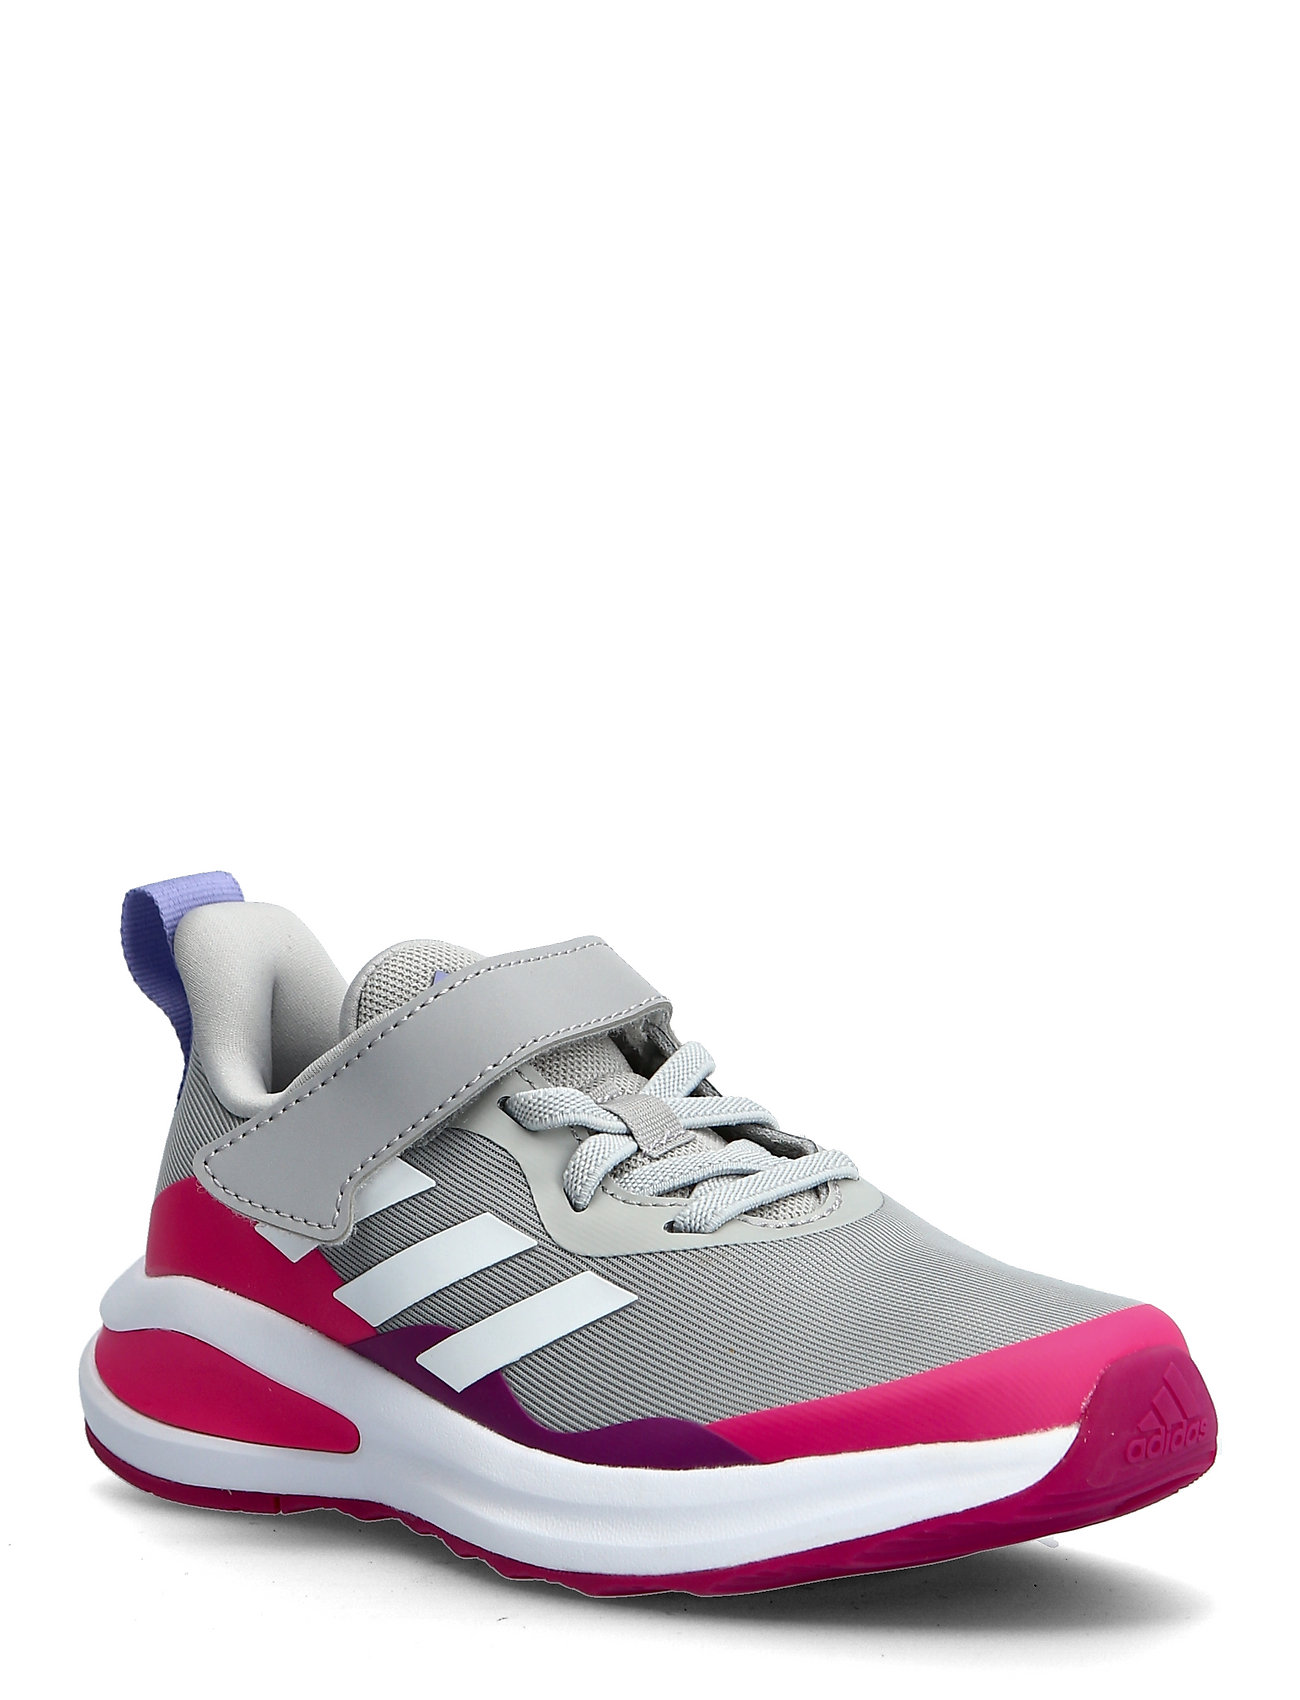 Fortarun Elastic Lace Top Strap Running Shoes Sports Shoes Running/training Shoes Grå Adidas Performance